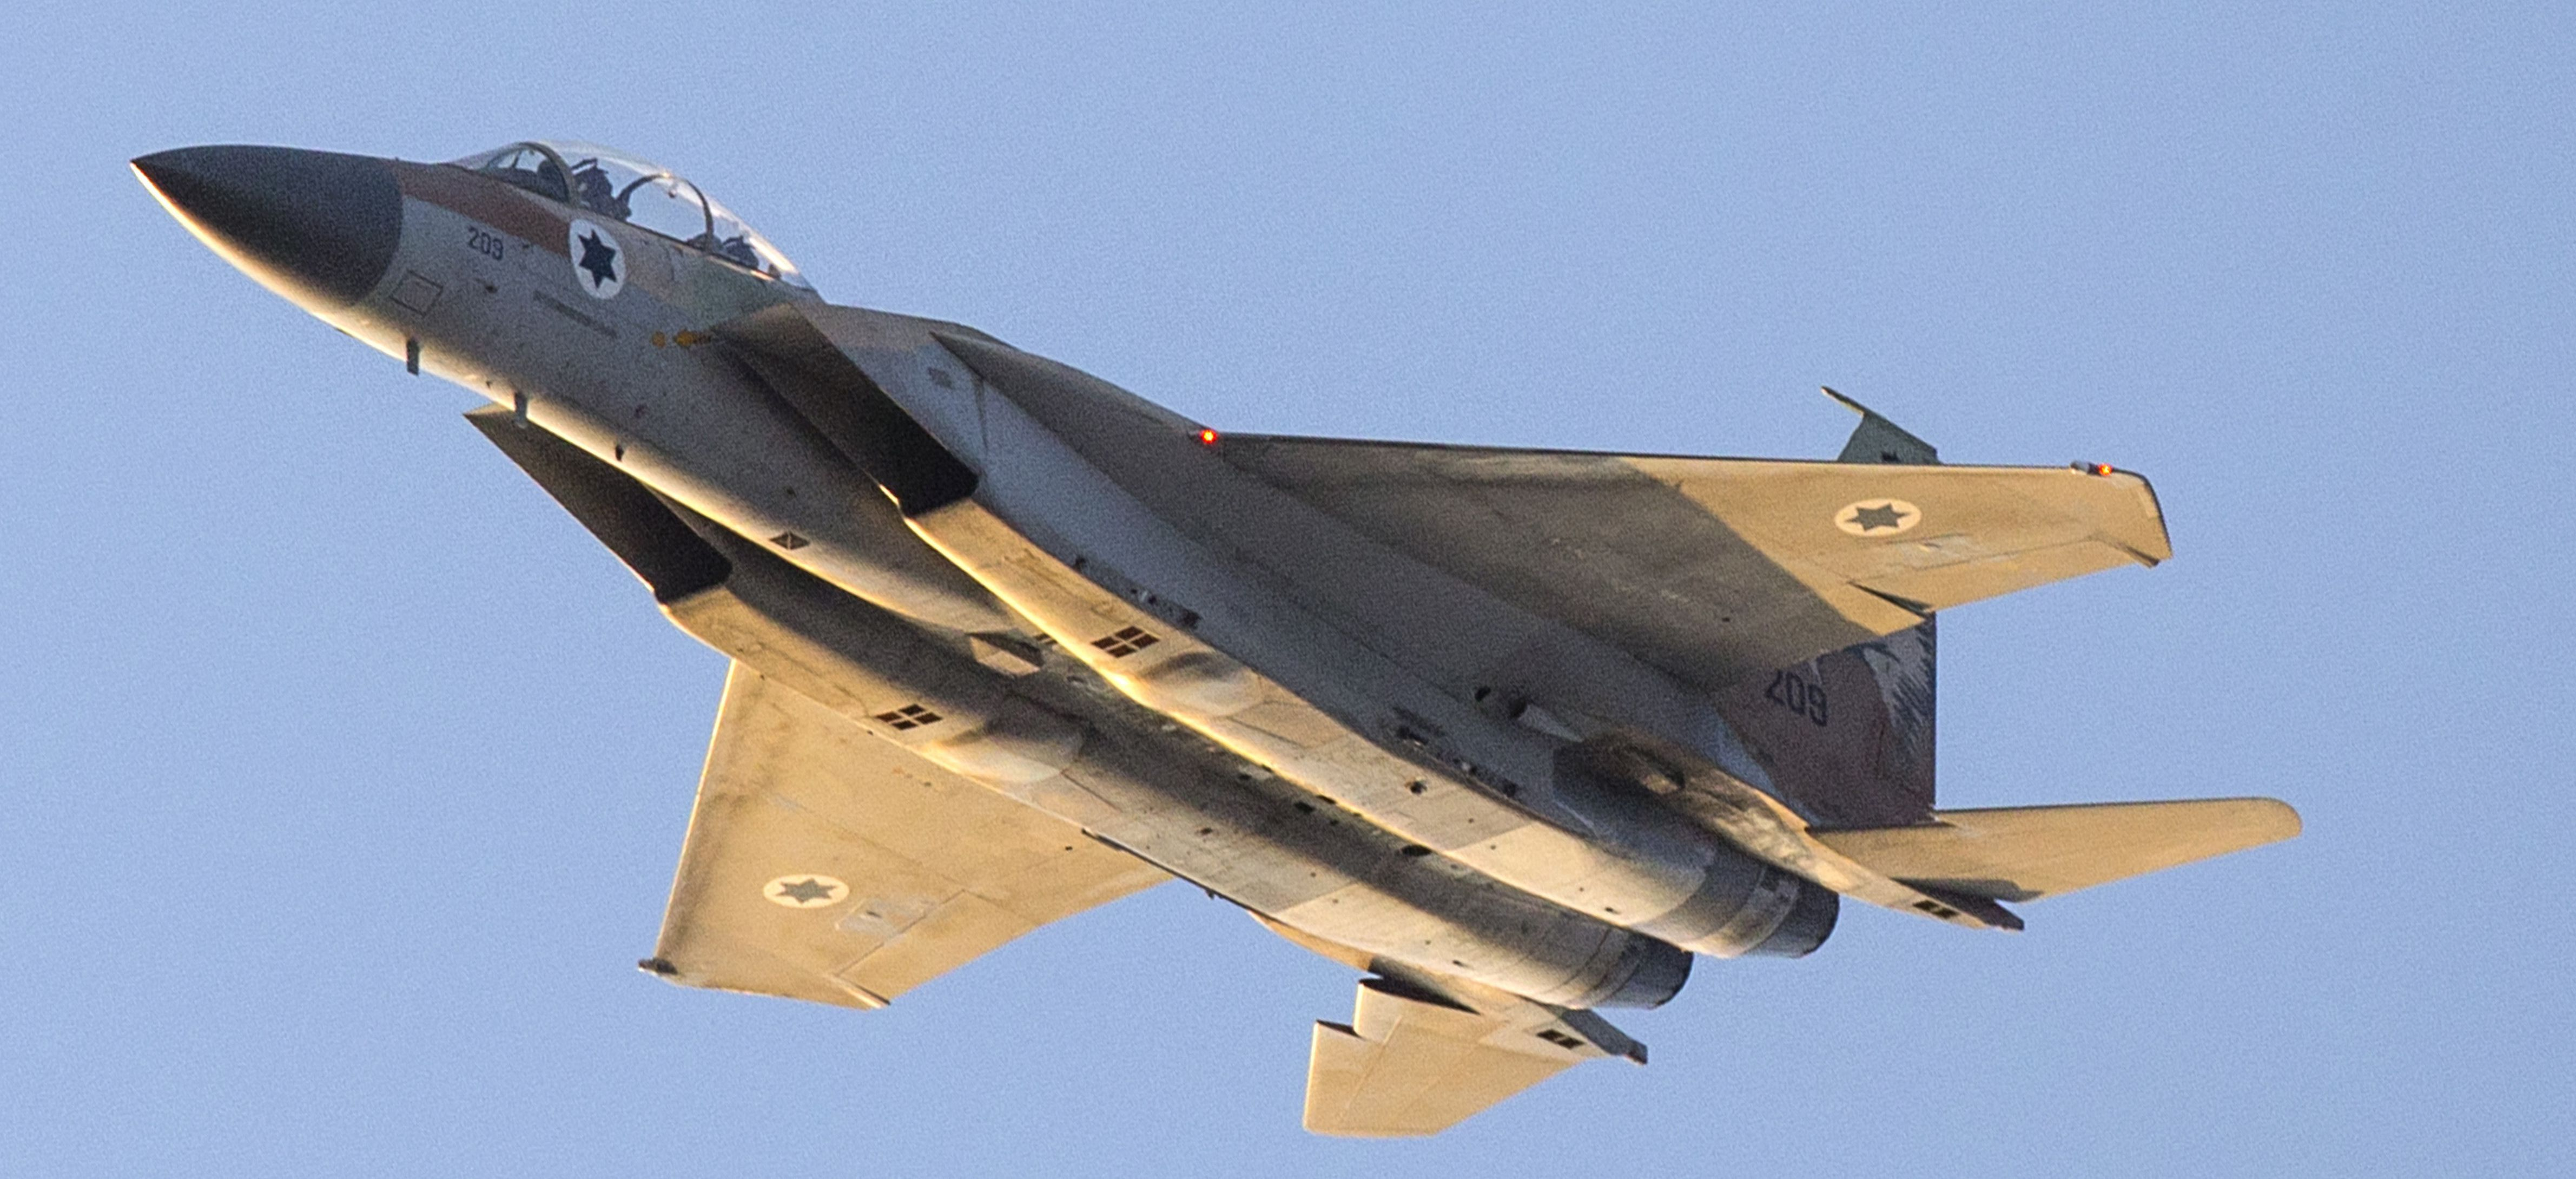 Israeli Air Force Launches Missiles On Syrian Army In Quneitra - Media